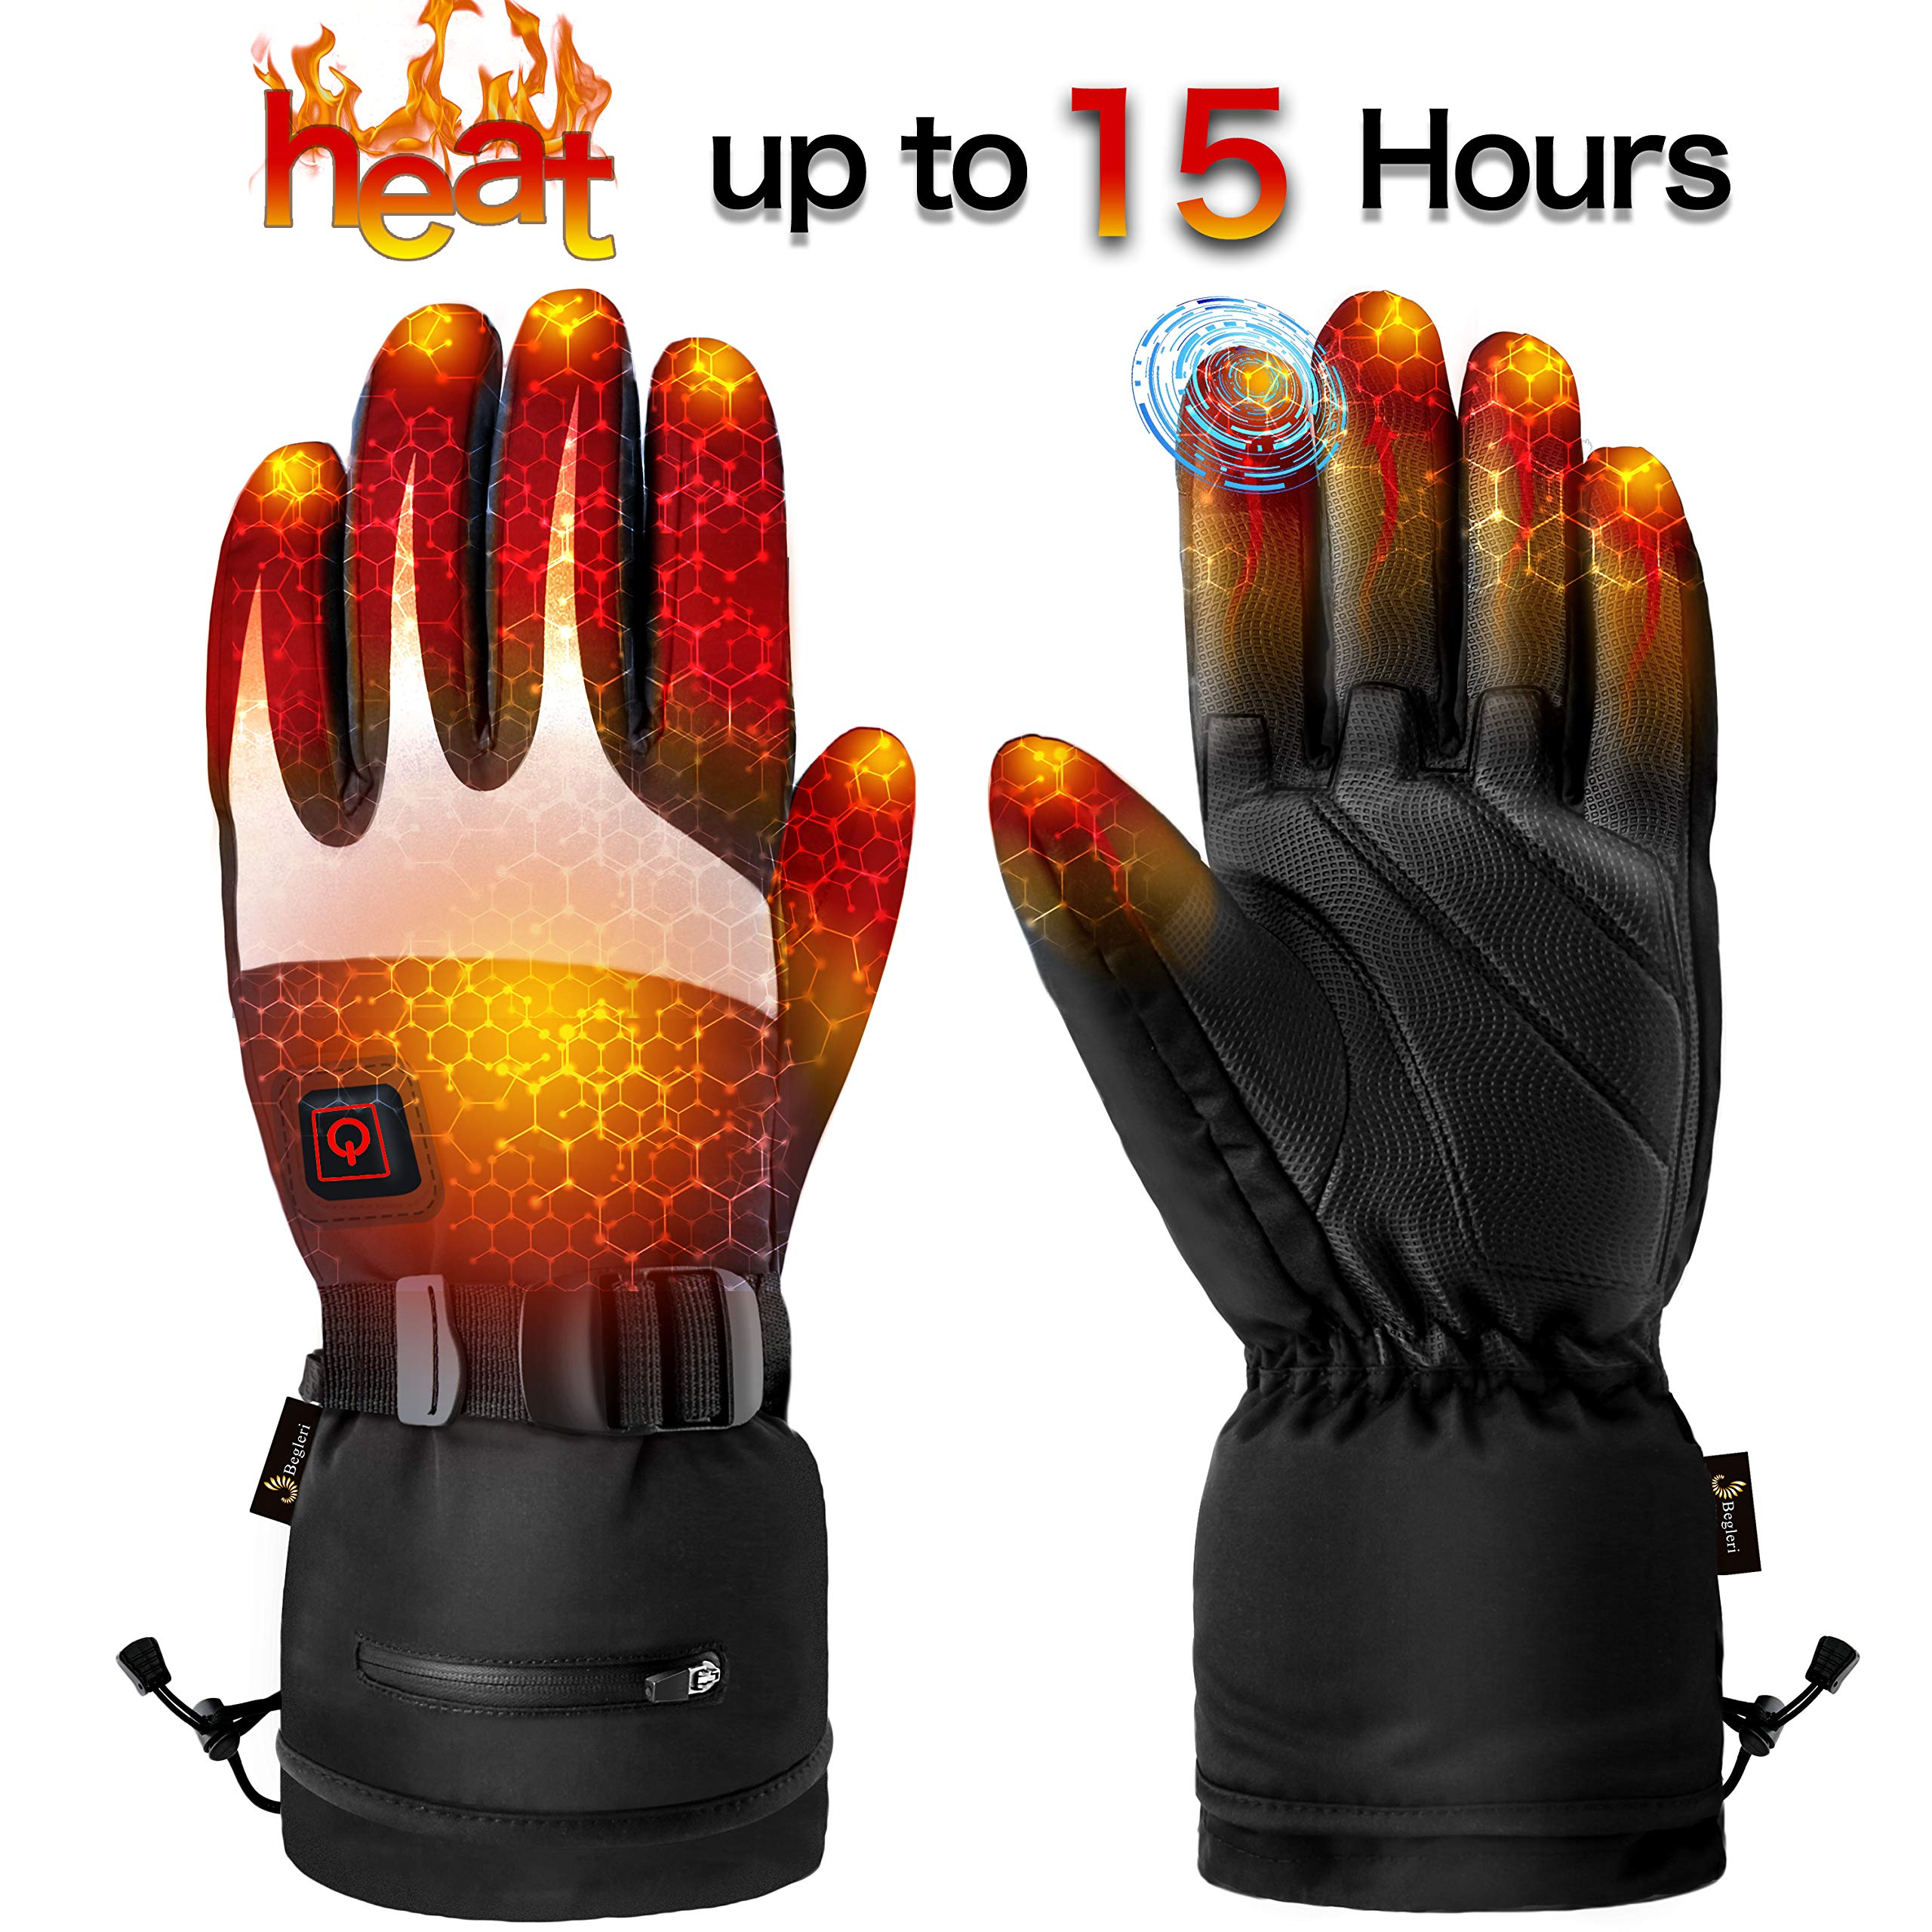 Heated Gloves Men Women - Electric Winter Gloves Rechargeable Heated Motorcycle Gloves, Battery Heating Gloves Waterproof for Snowing Hunting Skiing Climbing by Begleri